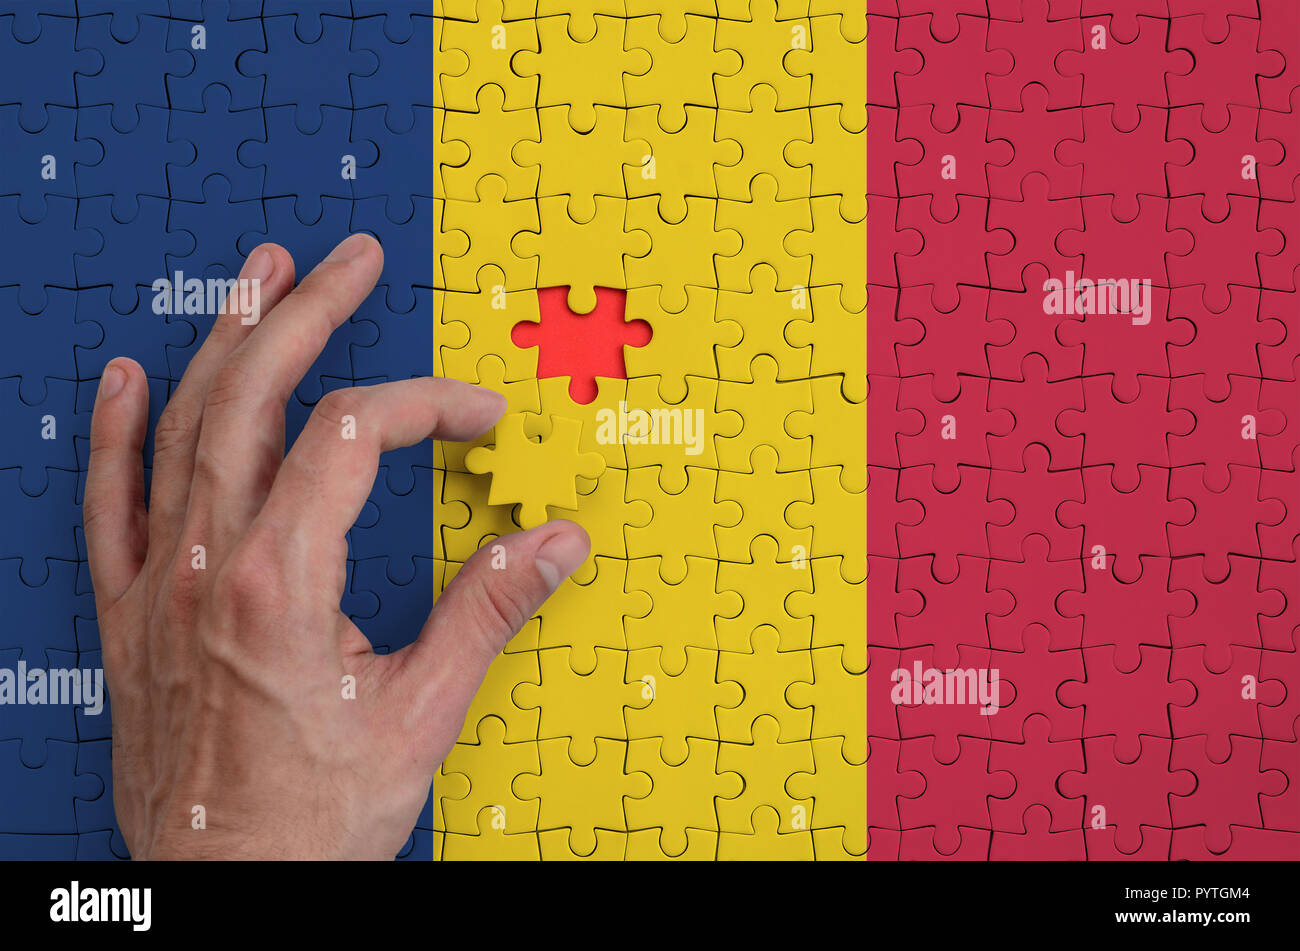 Chad flag  is depicted on a puzzle, which the man's hand completes to fold. - Stock Image